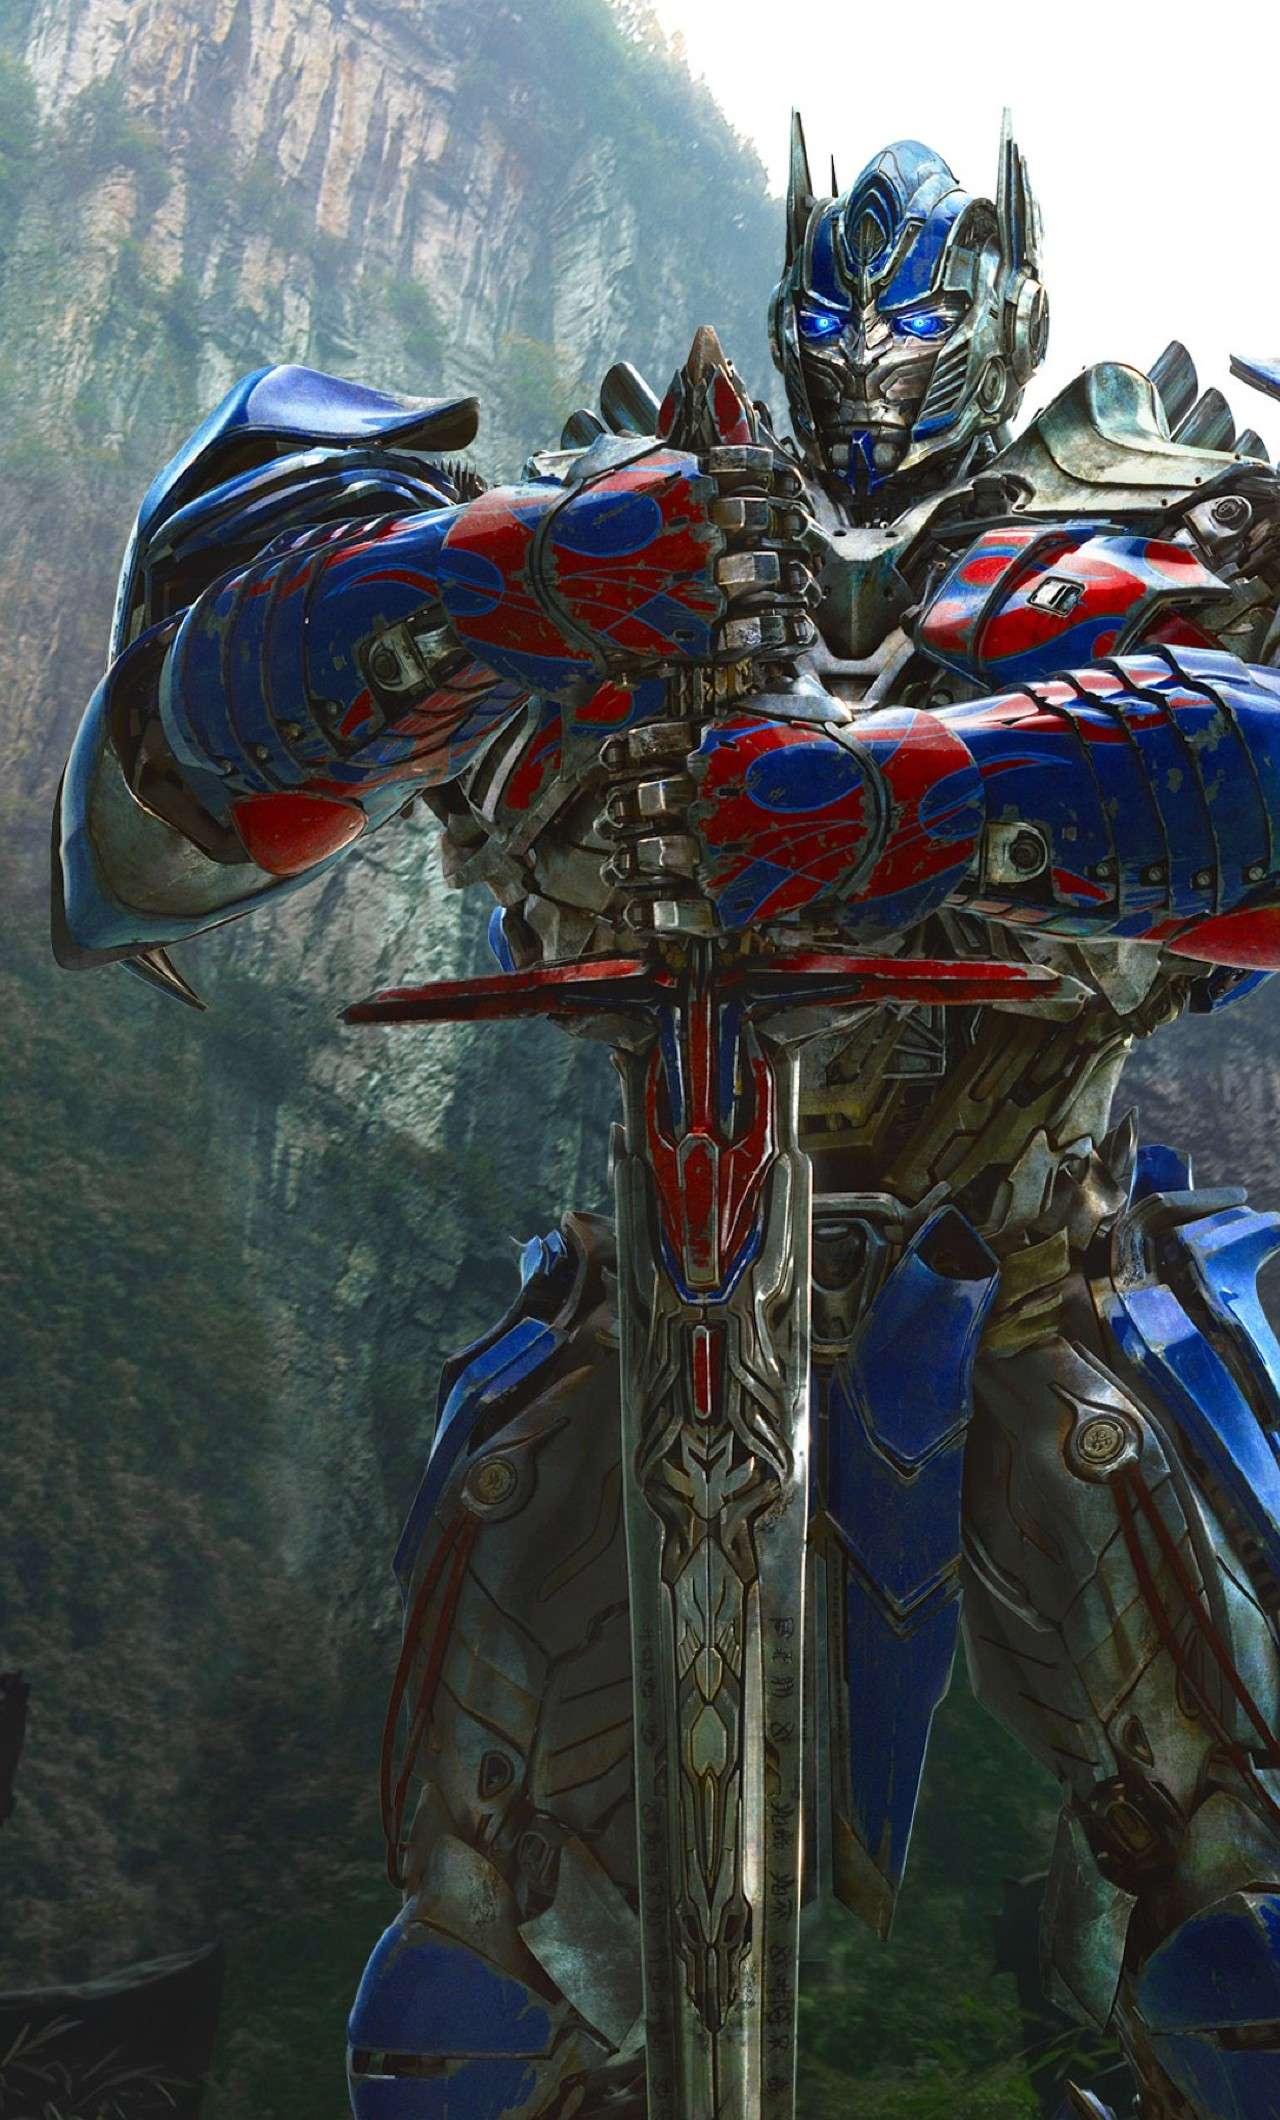 download optimus prime in transformers 240x320 resolution, full hd